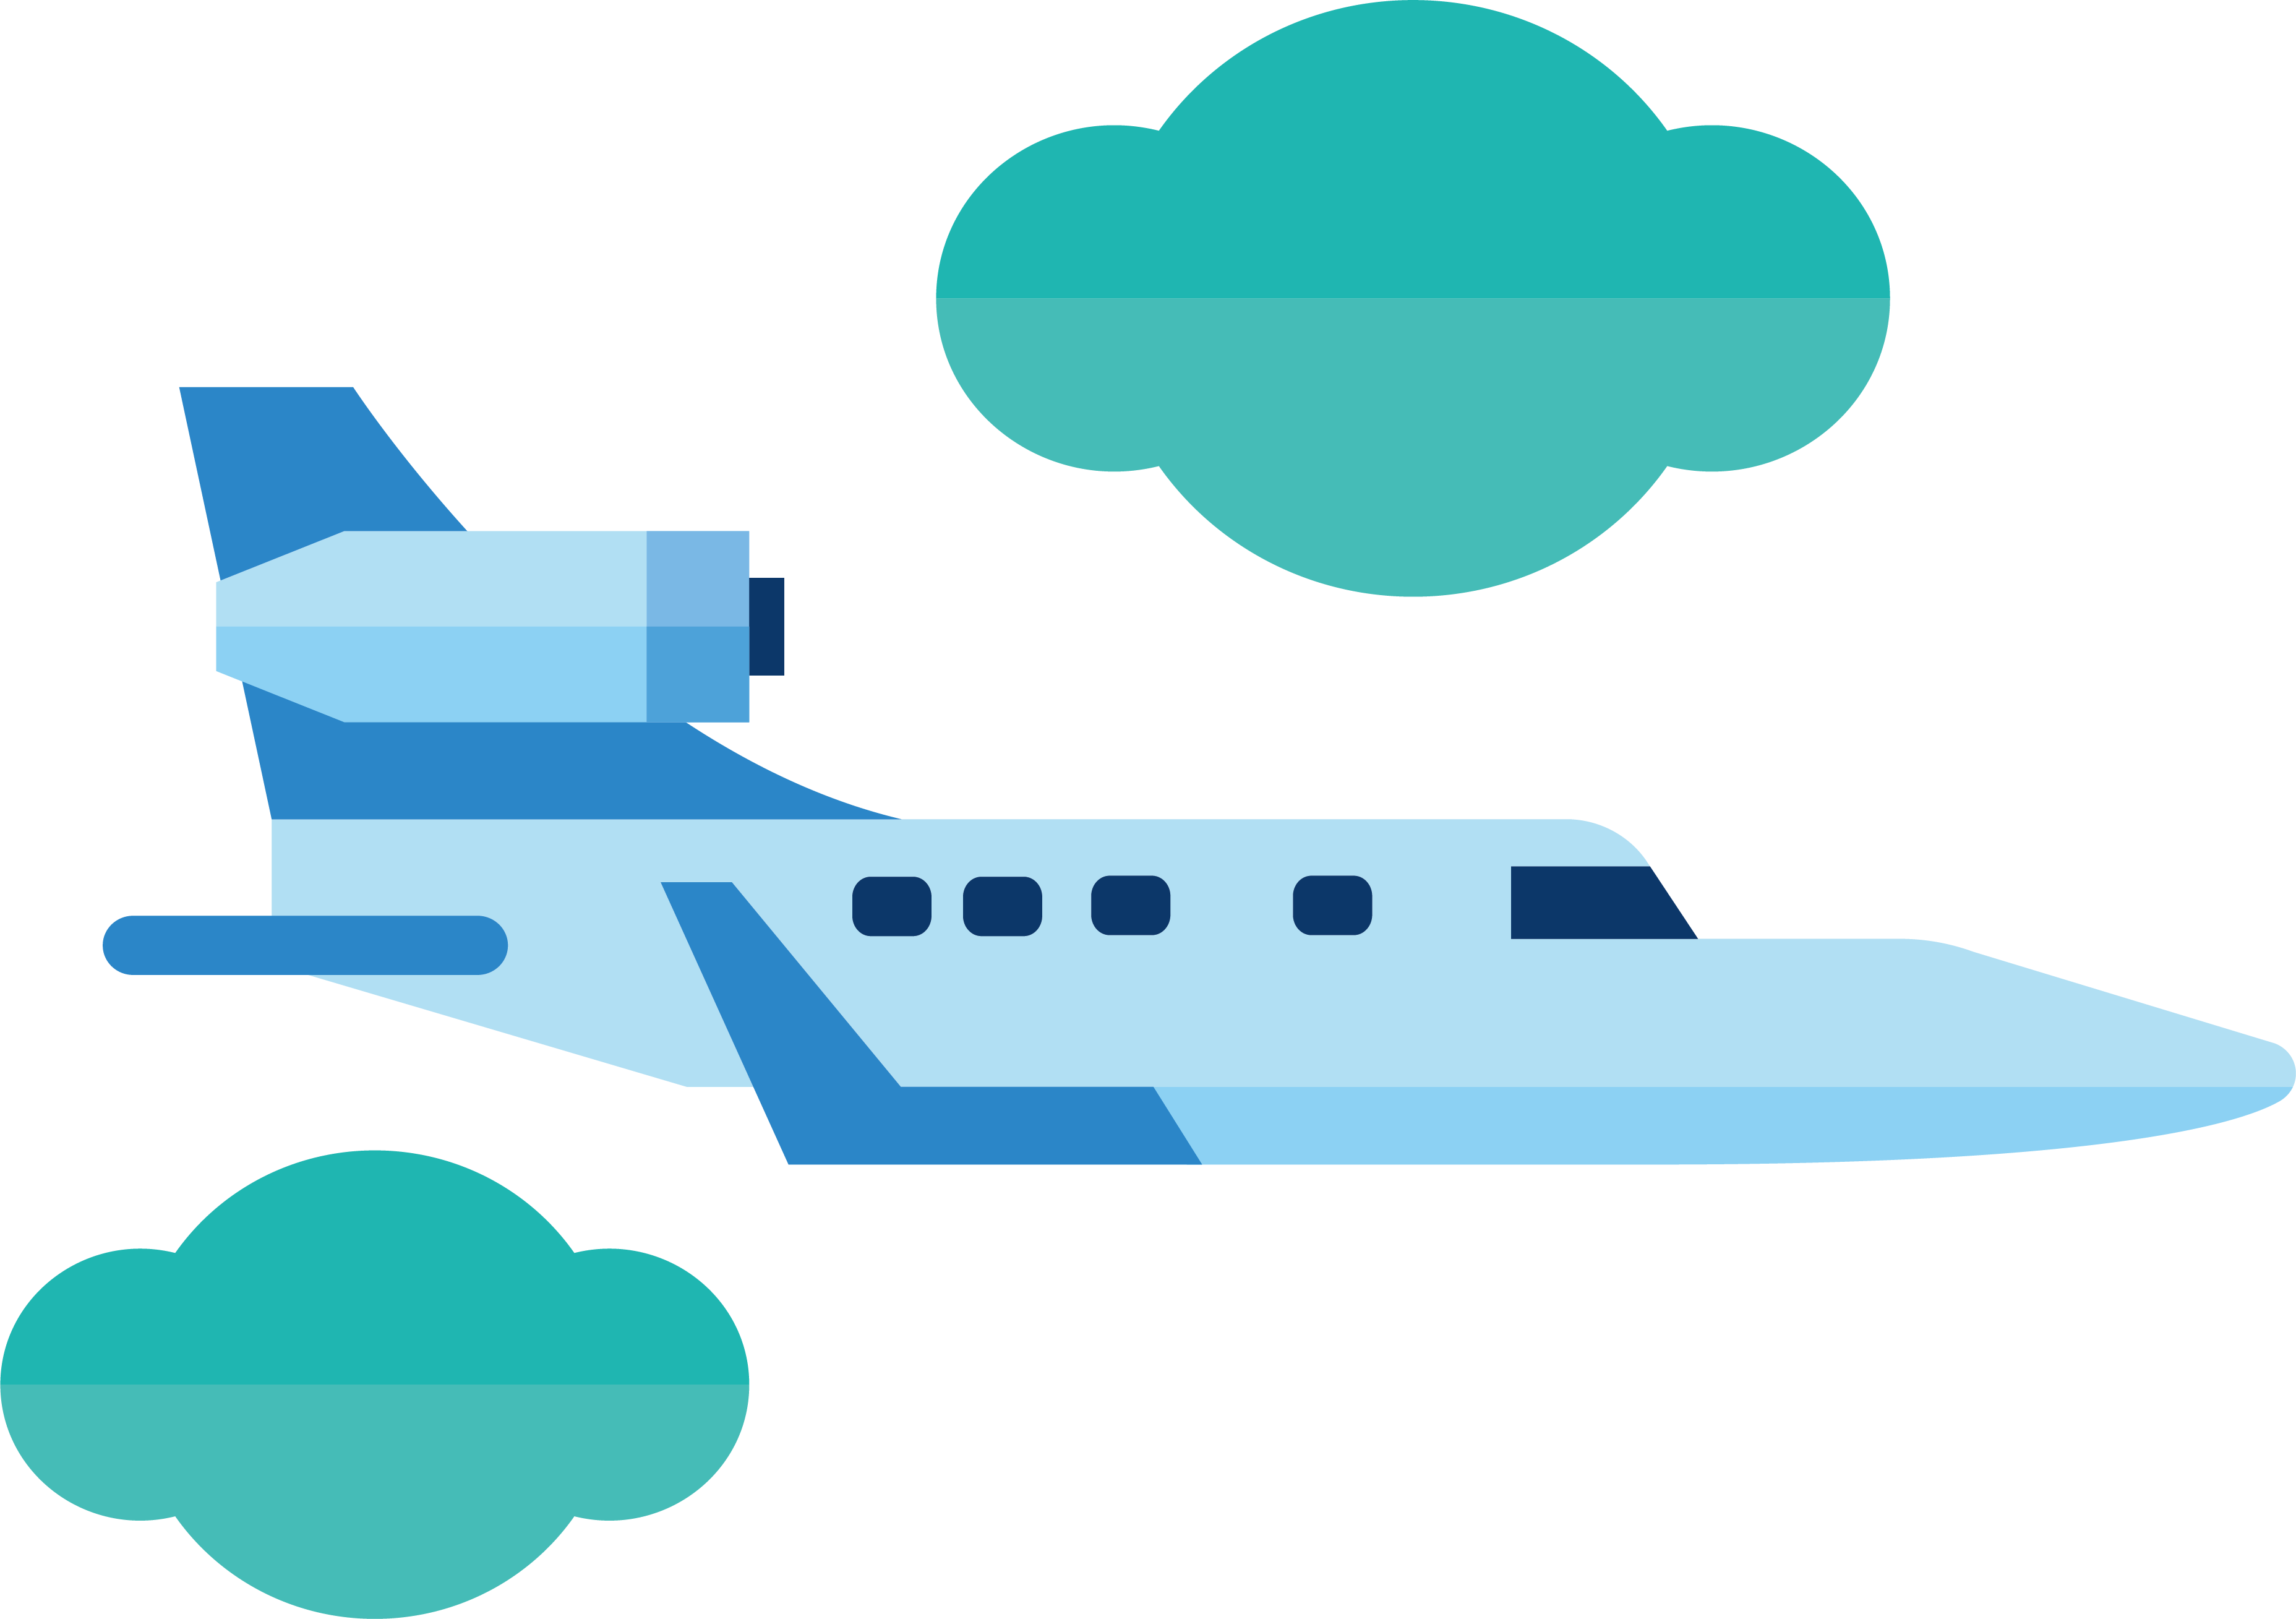 Clouds clipart airplane. Aircraft clip art in